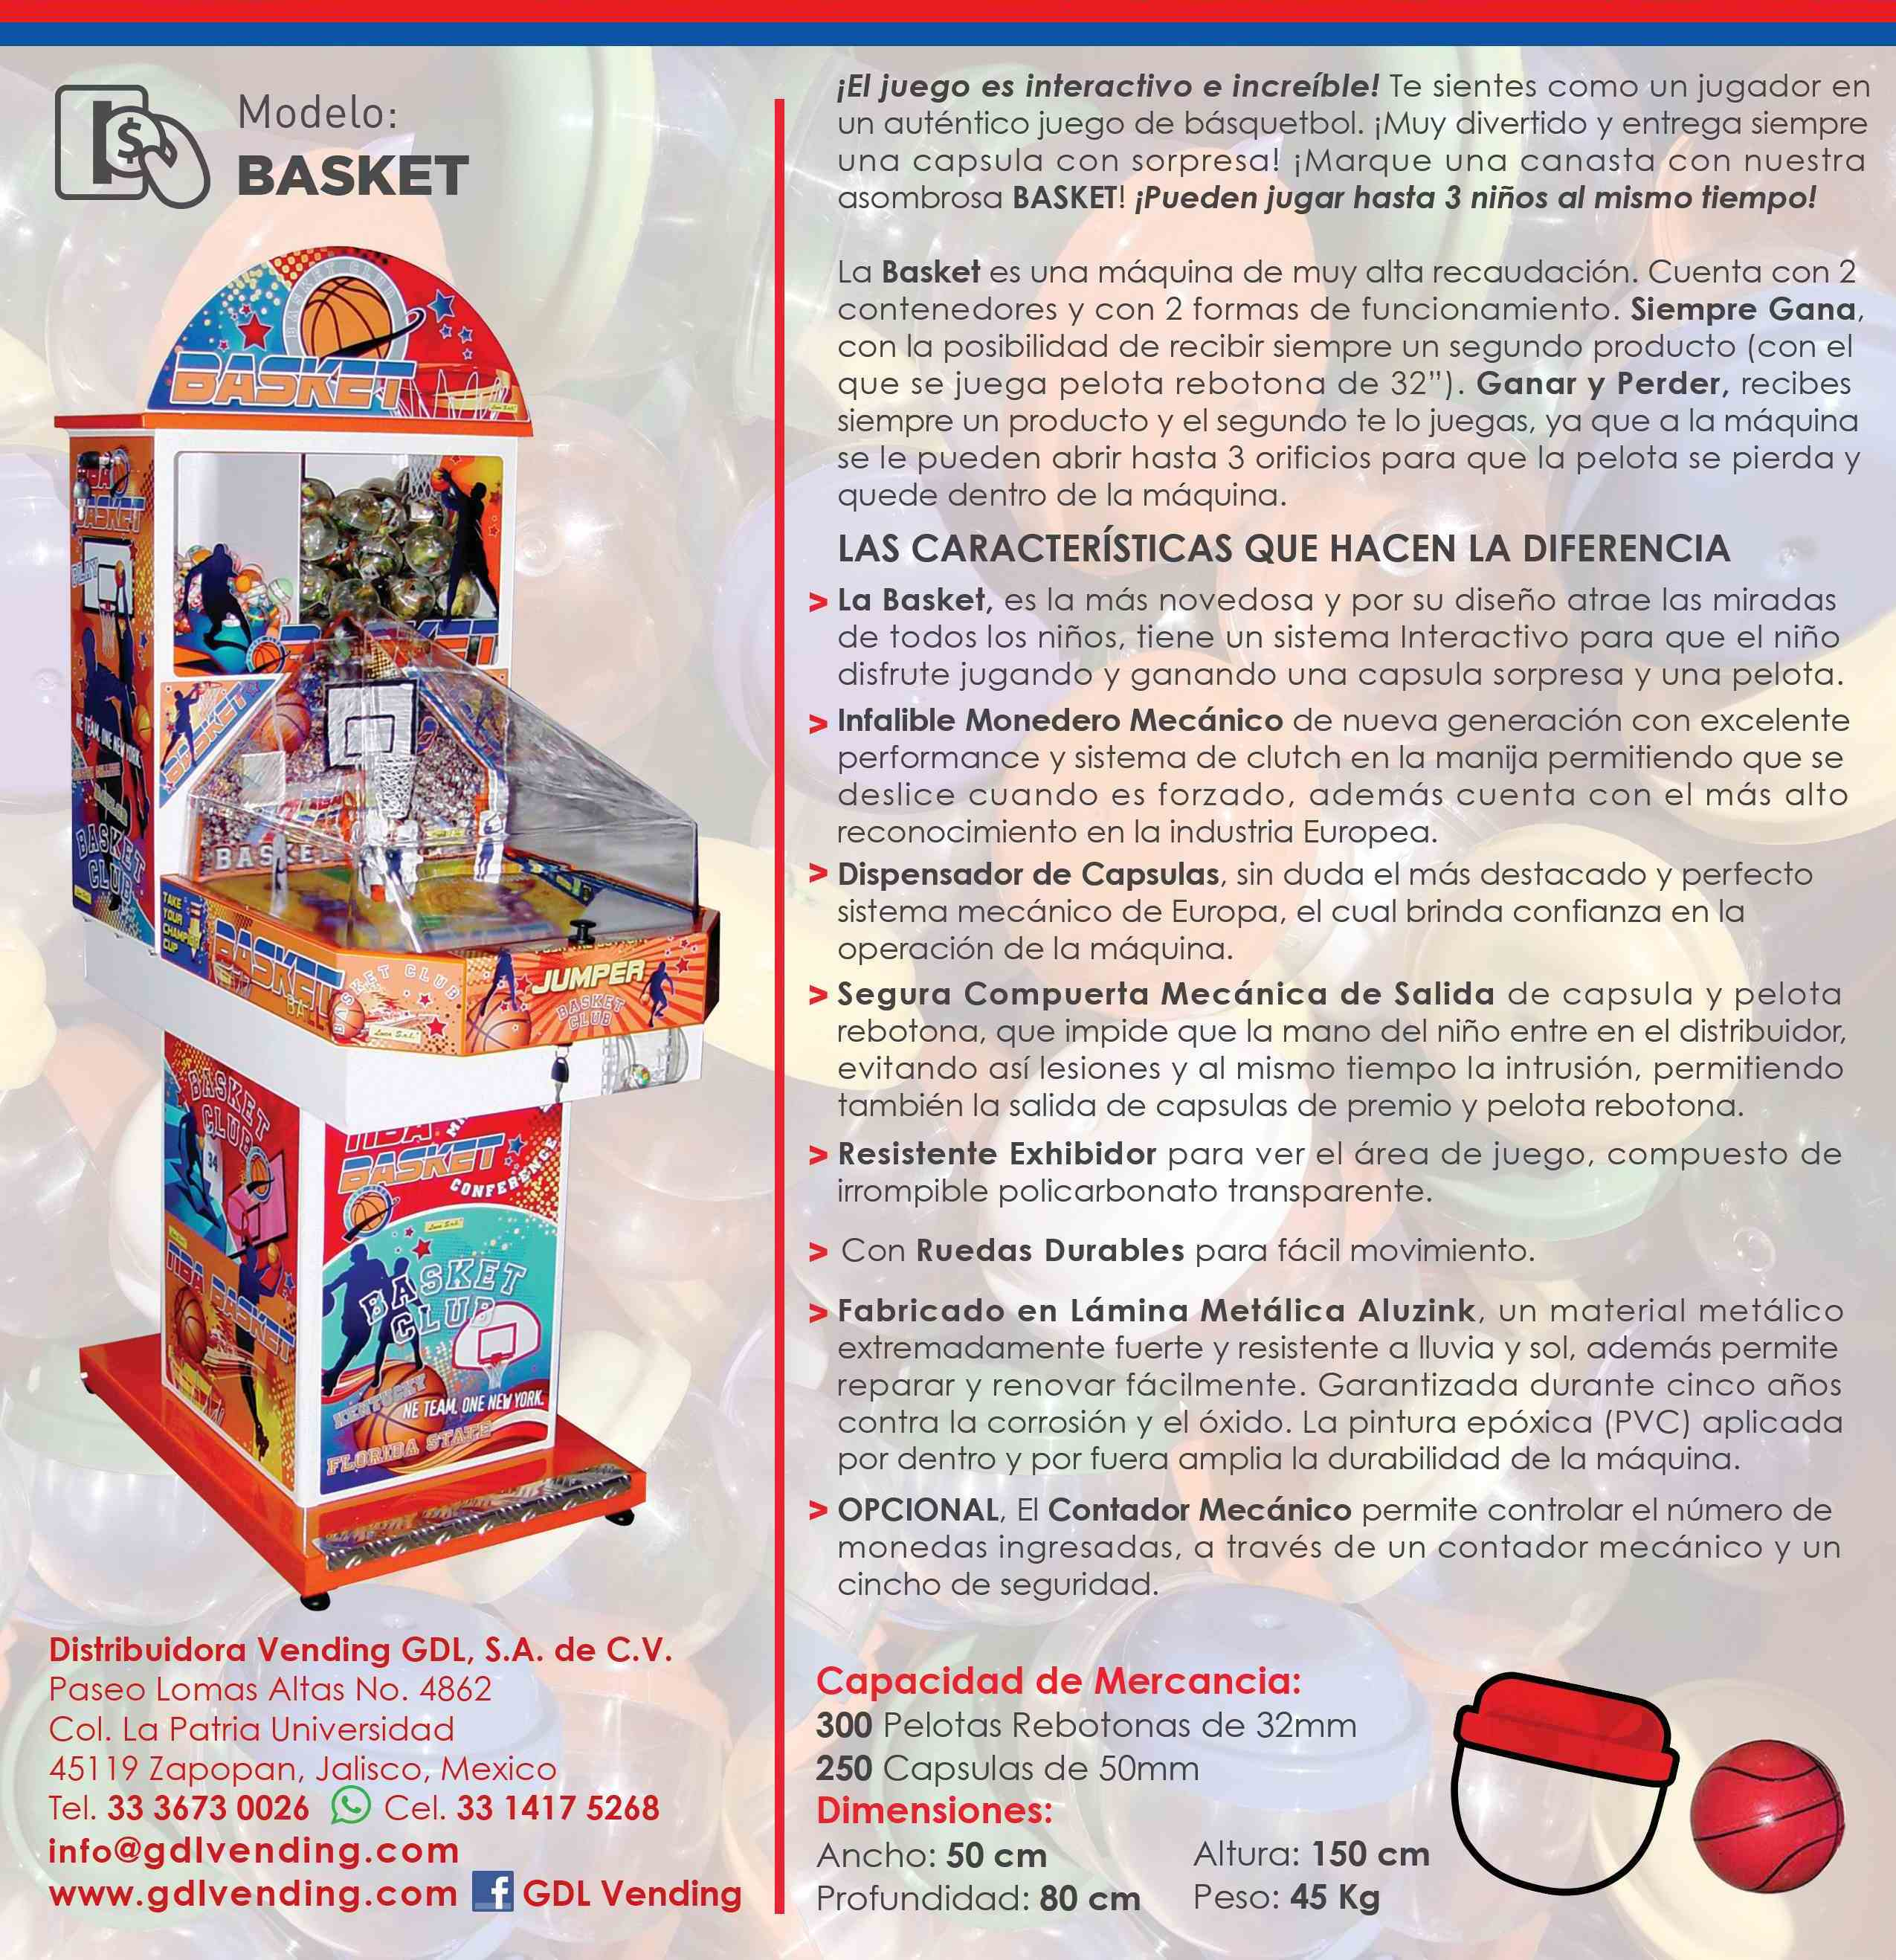 GDL_vending_BASKET-cropped